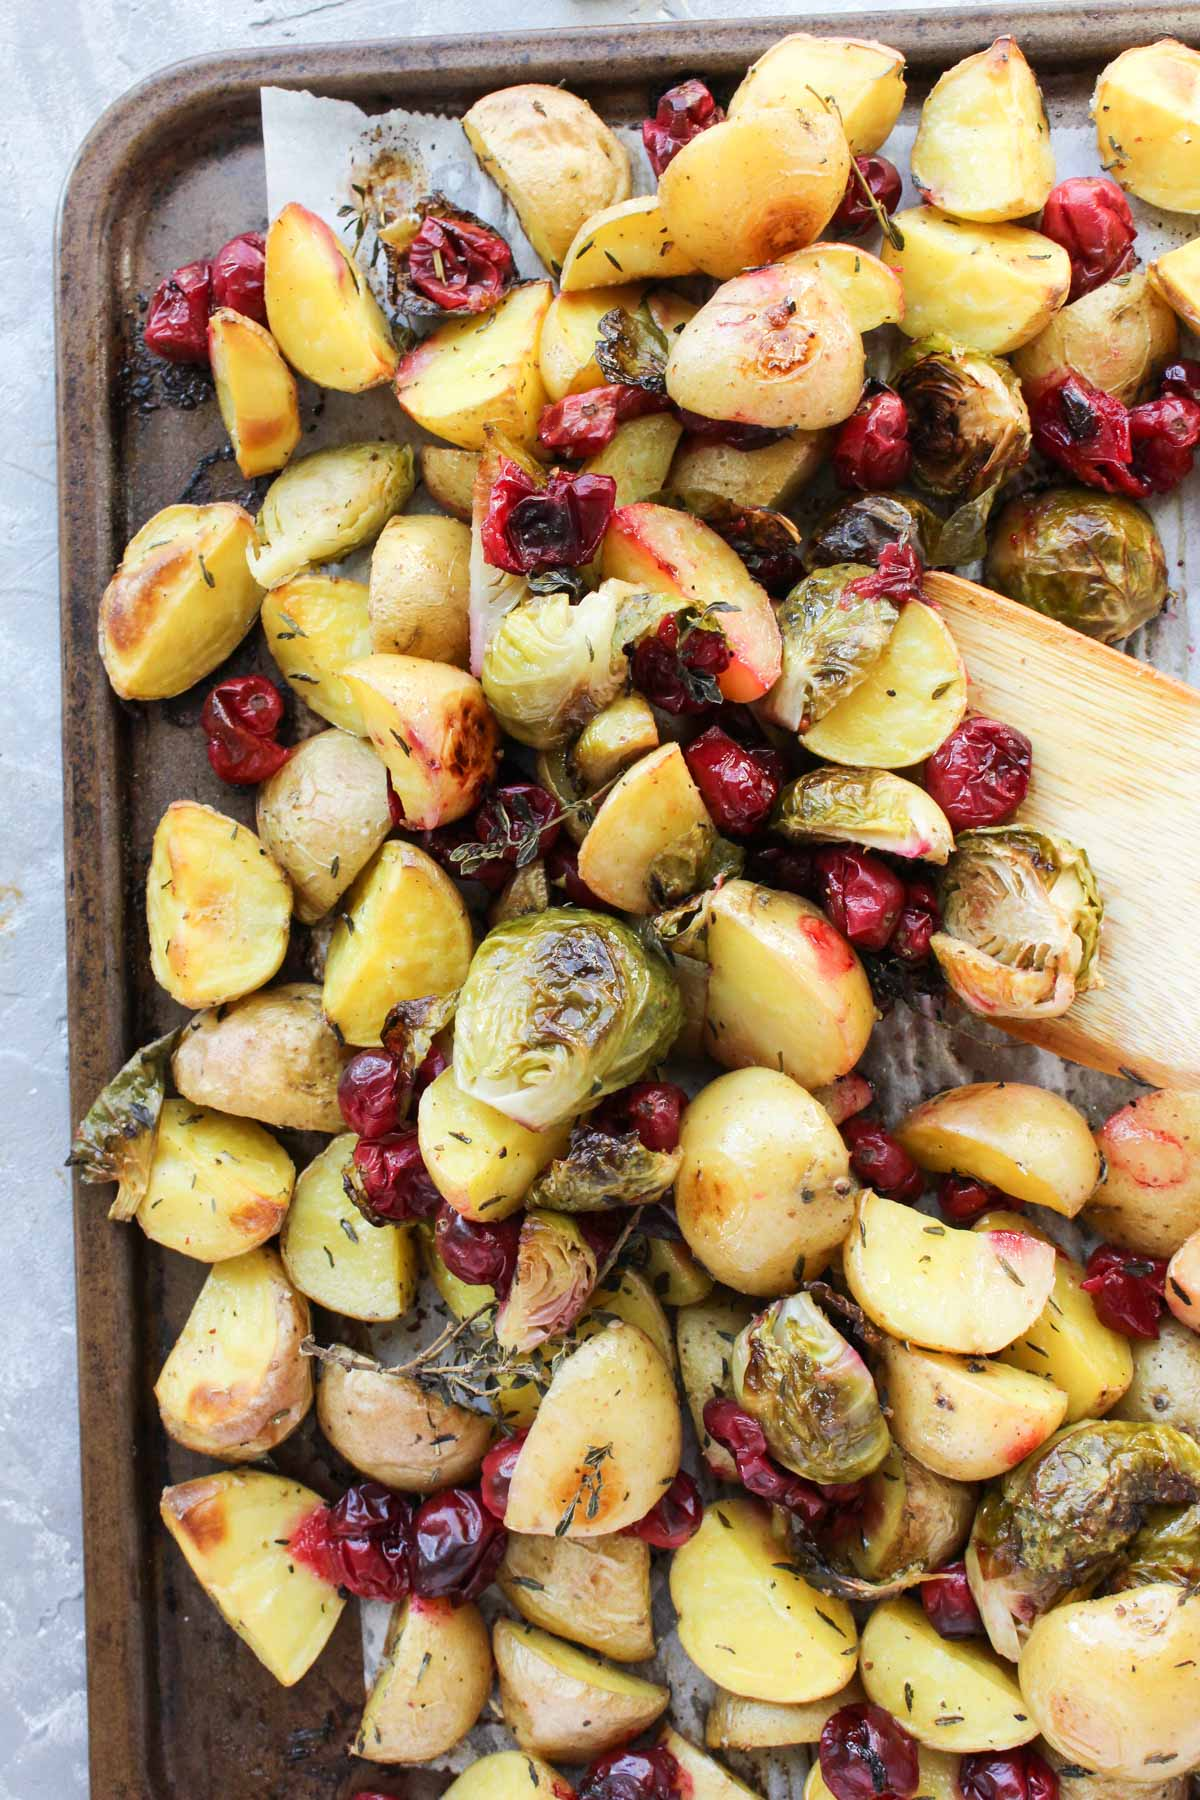 Roasted vegetables side dish on a sheet pan.